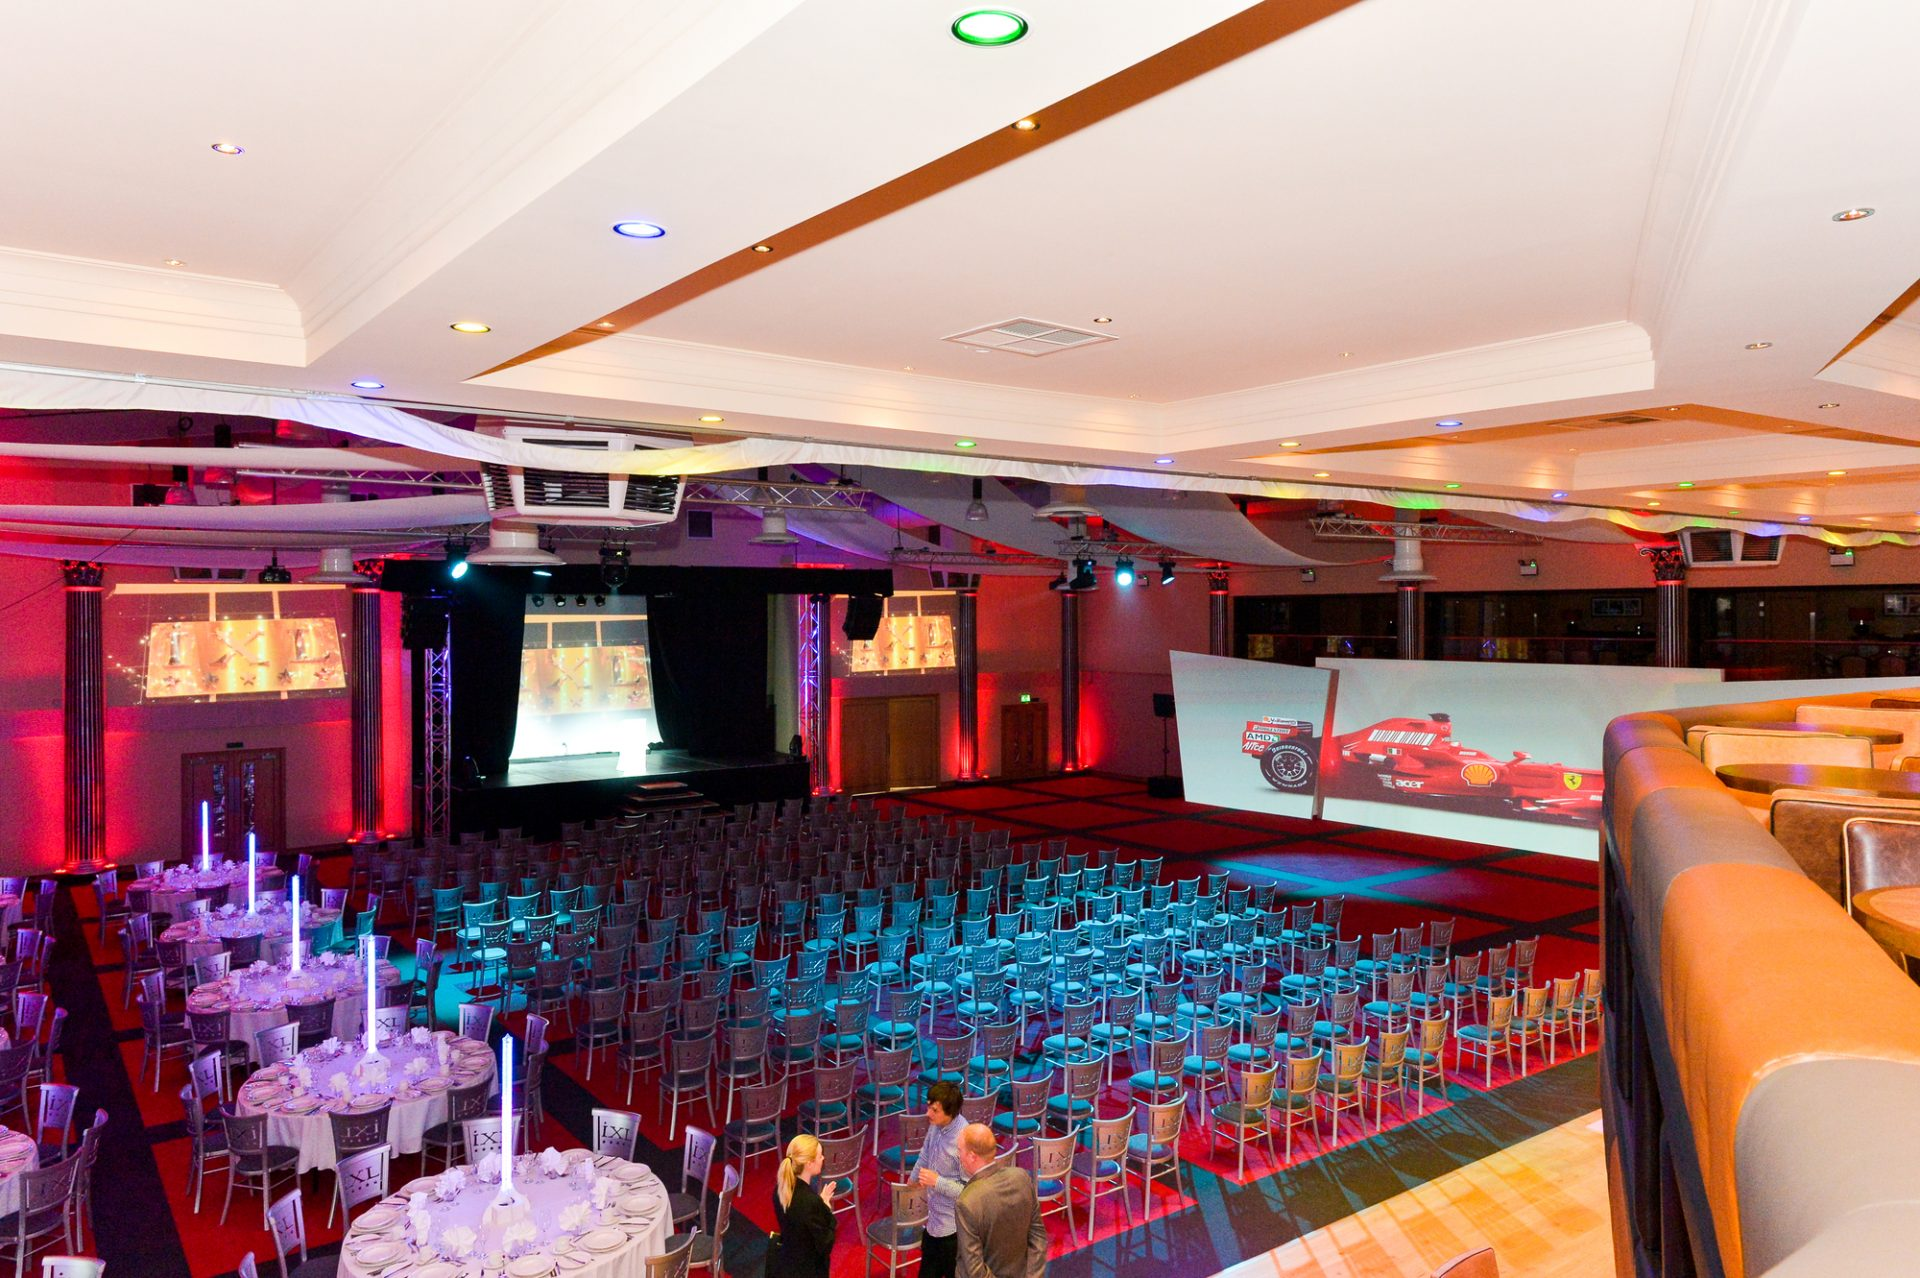 The best corporate events venue the IXL Events centre